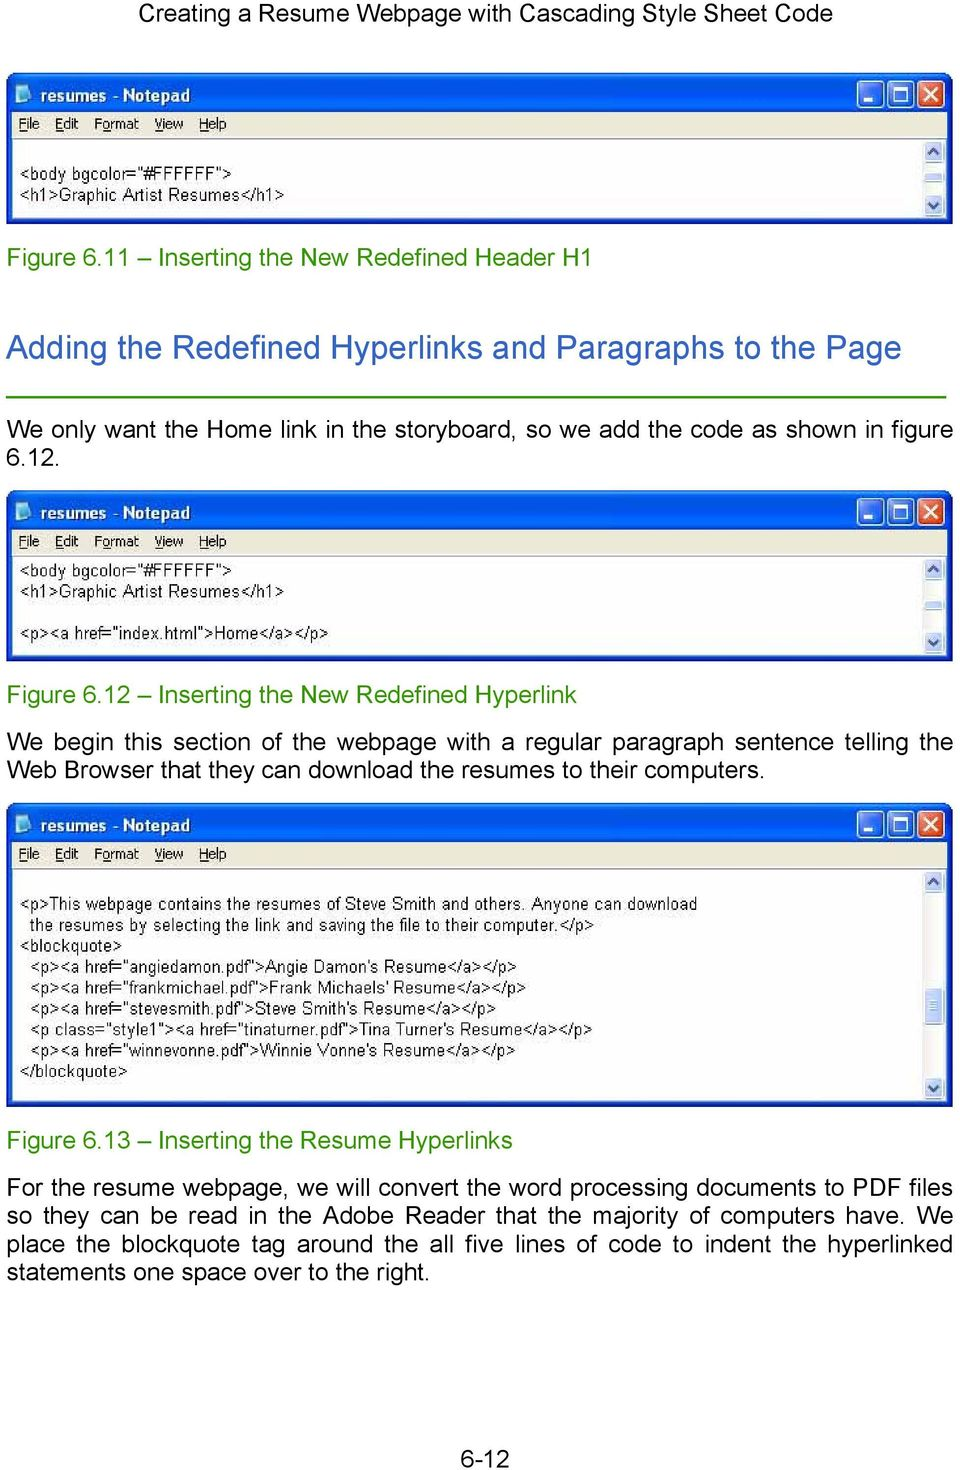 6.12. 12 Inserting the New Redefined Hyperlink We begin this section of the webpage with a regular paragraph sentence telling the Web Browser that they can download the resumes to